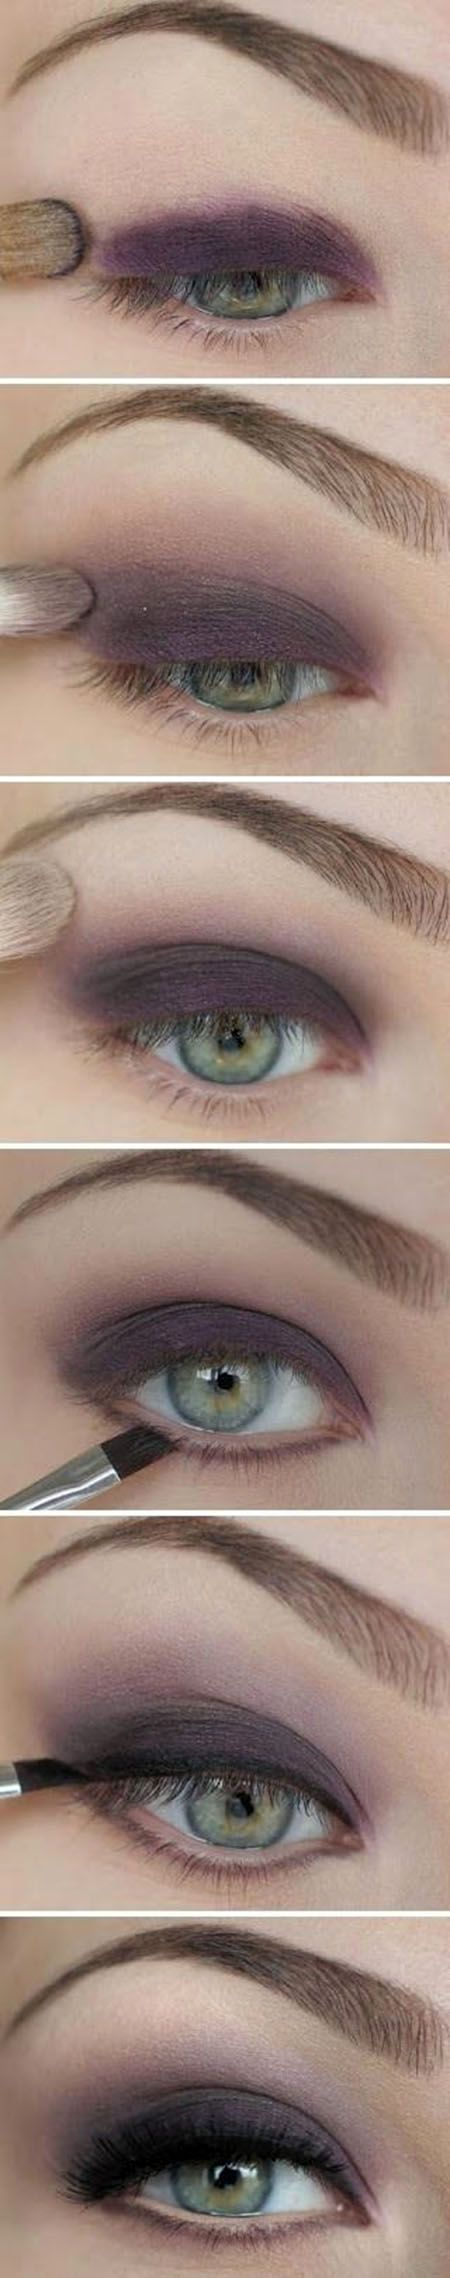 Dark Purple Eye Shadow Tutorial #eyemakeup #makeup